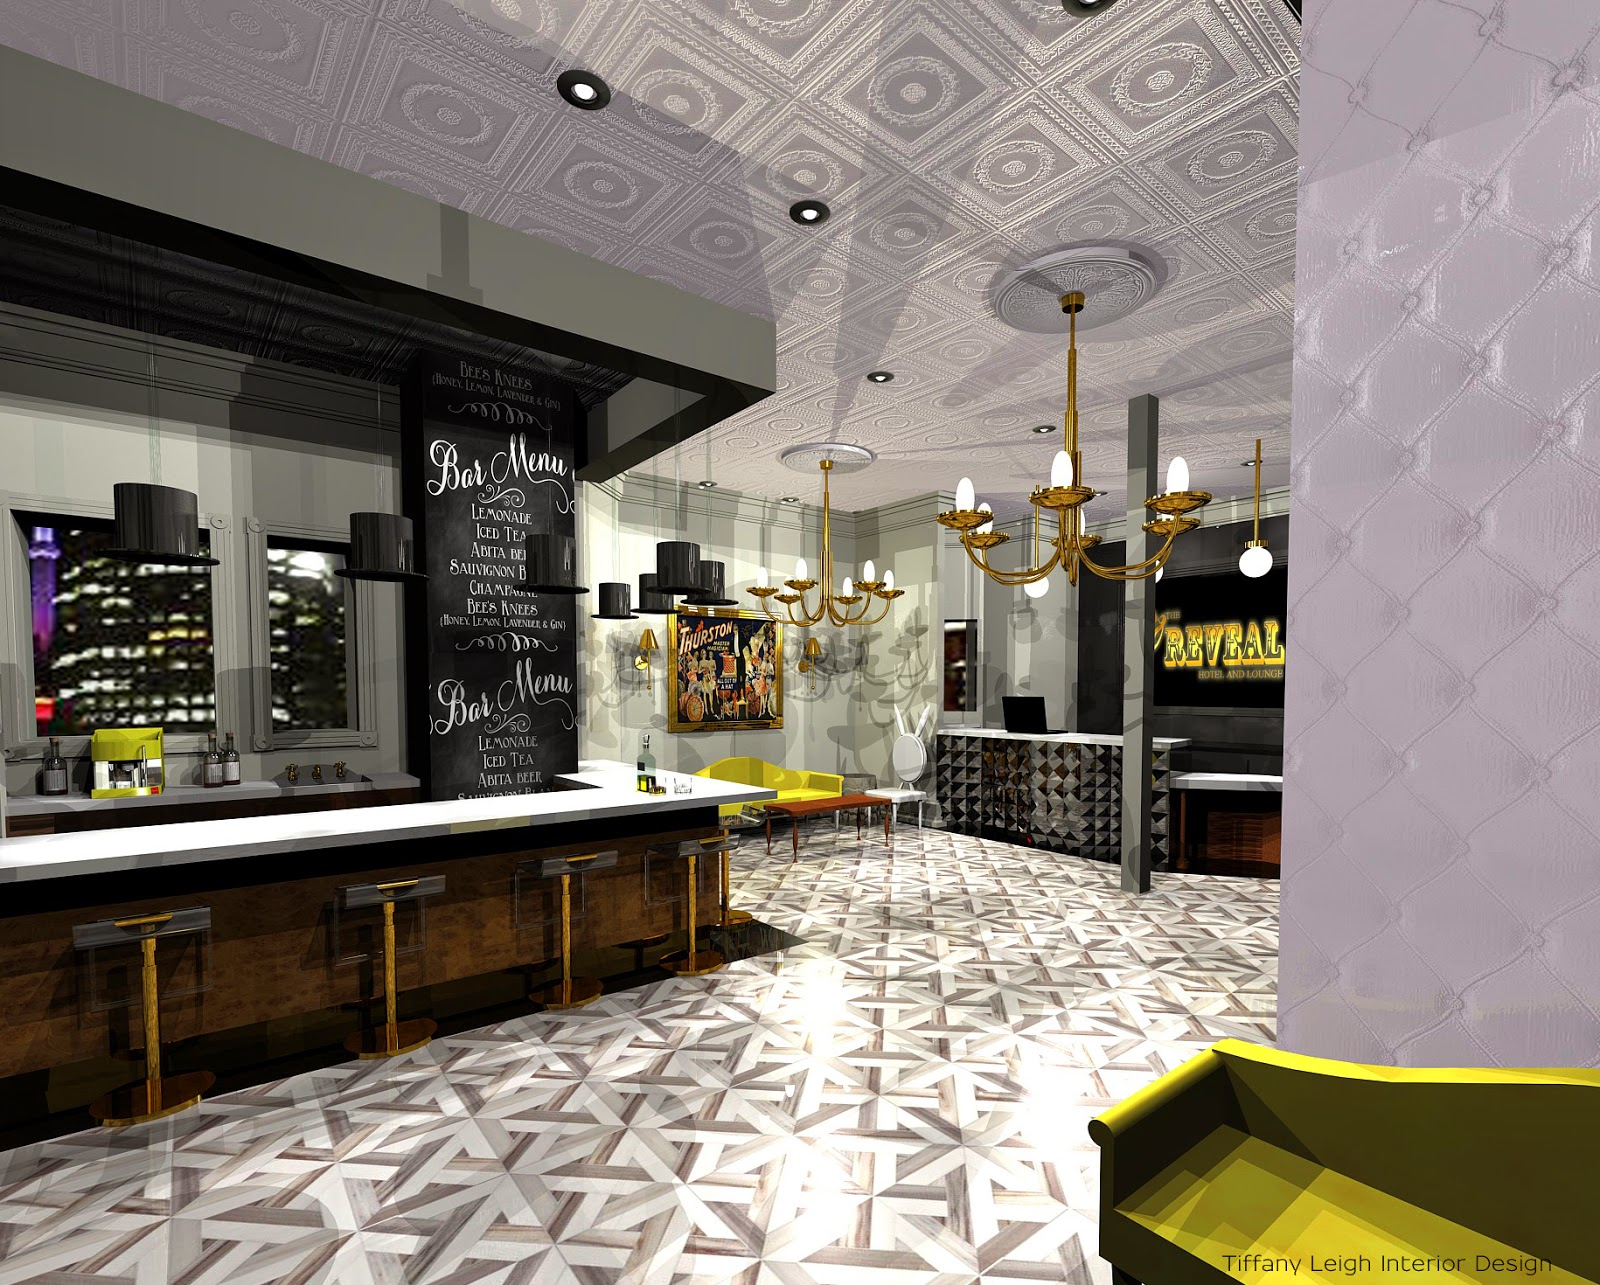 Tiffany leigh interior design hospitality project for Design hotel 3d